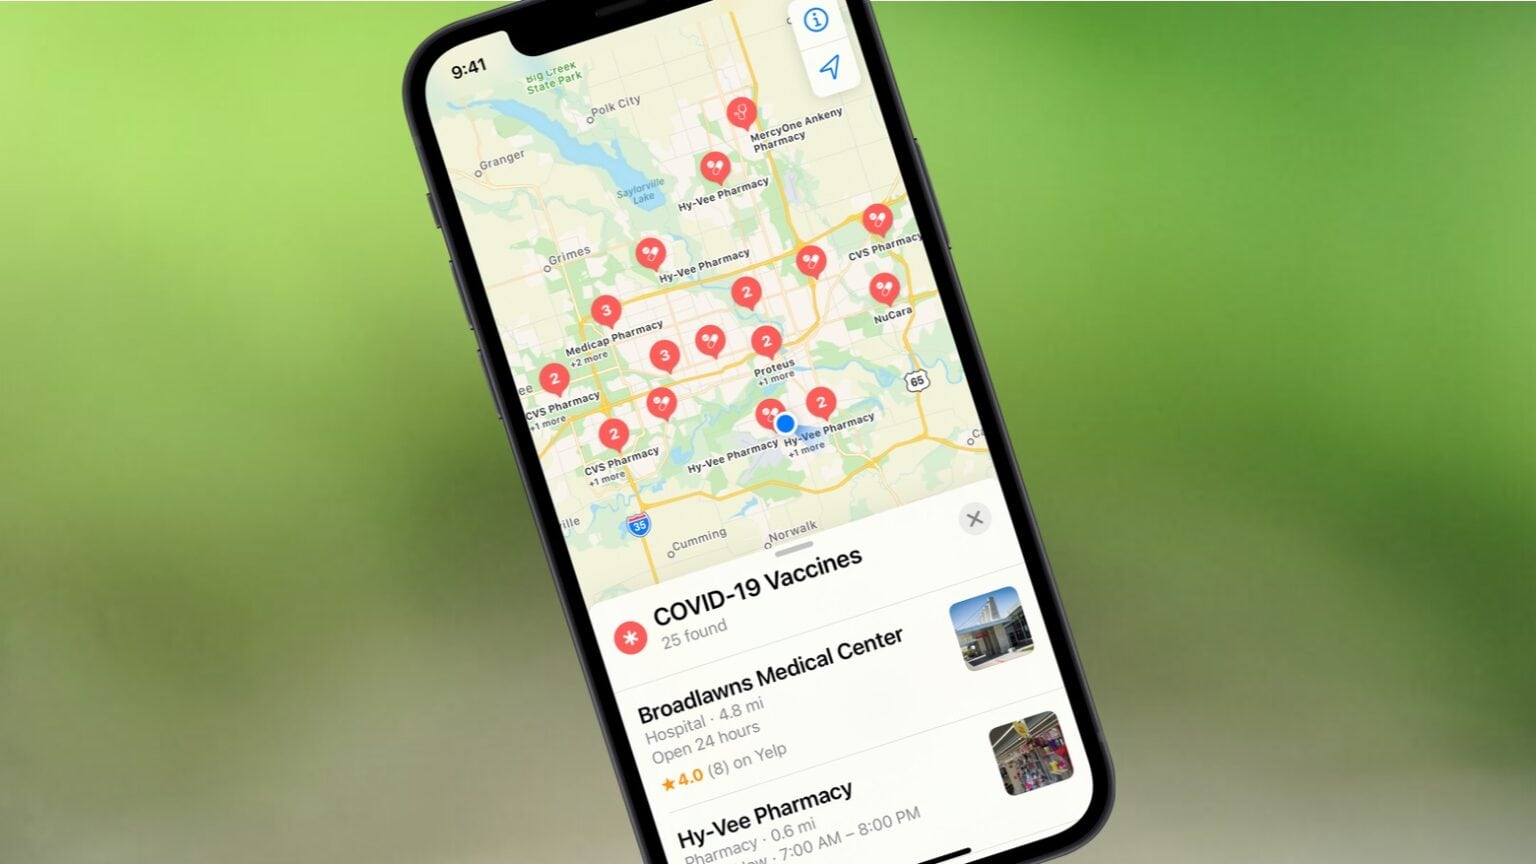 Apple Maps now shows COVID-19 vaccine locations.